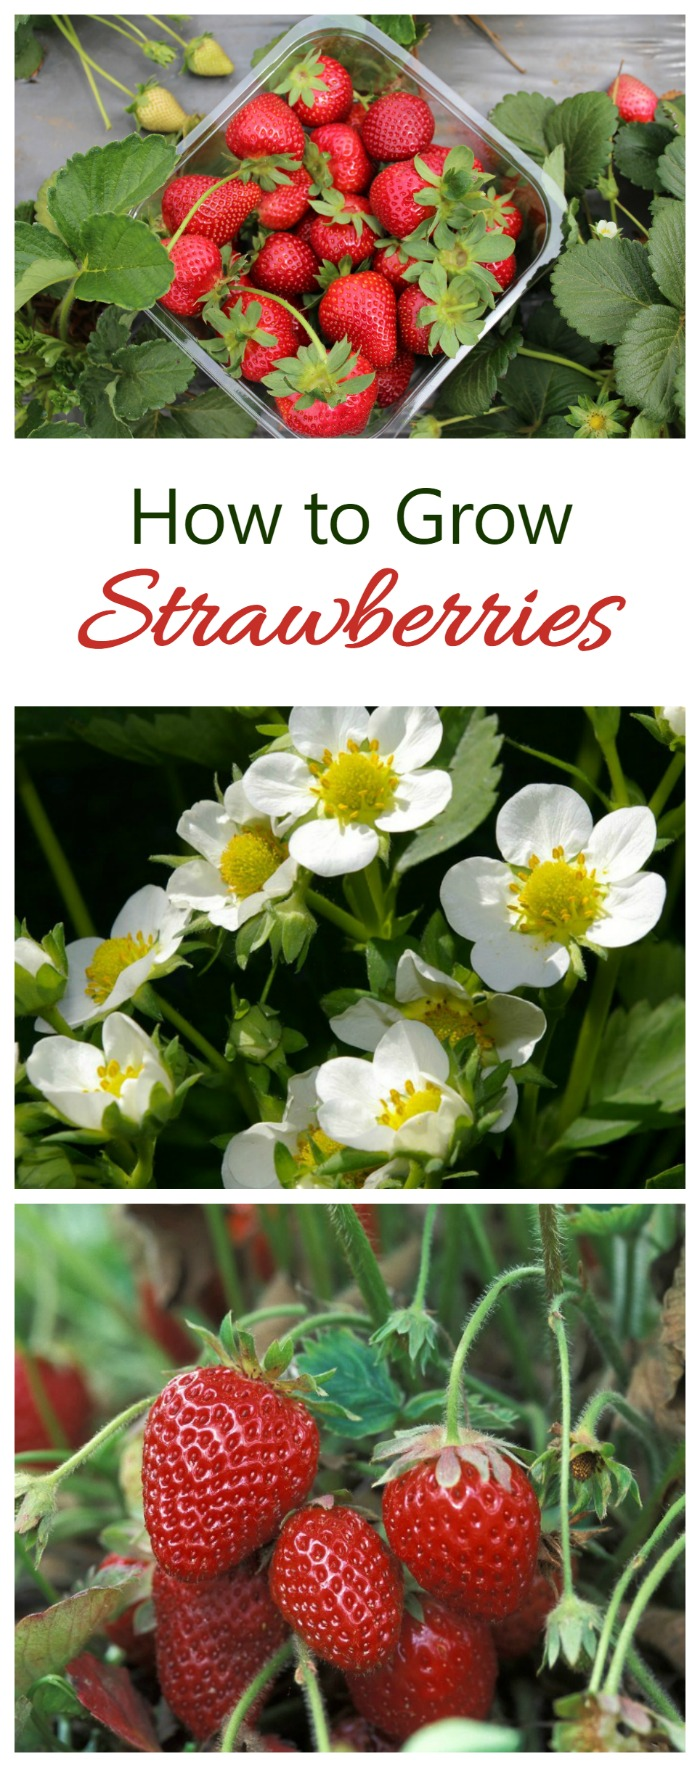 Strawberries sometimes develop oddly due to various factors, including damage from insects such as the tarnished plant bug or mites, or frost or heat injury, nutrient deficiencies (such as boron), chemical injury, etc. Poor pollination can also affect development.